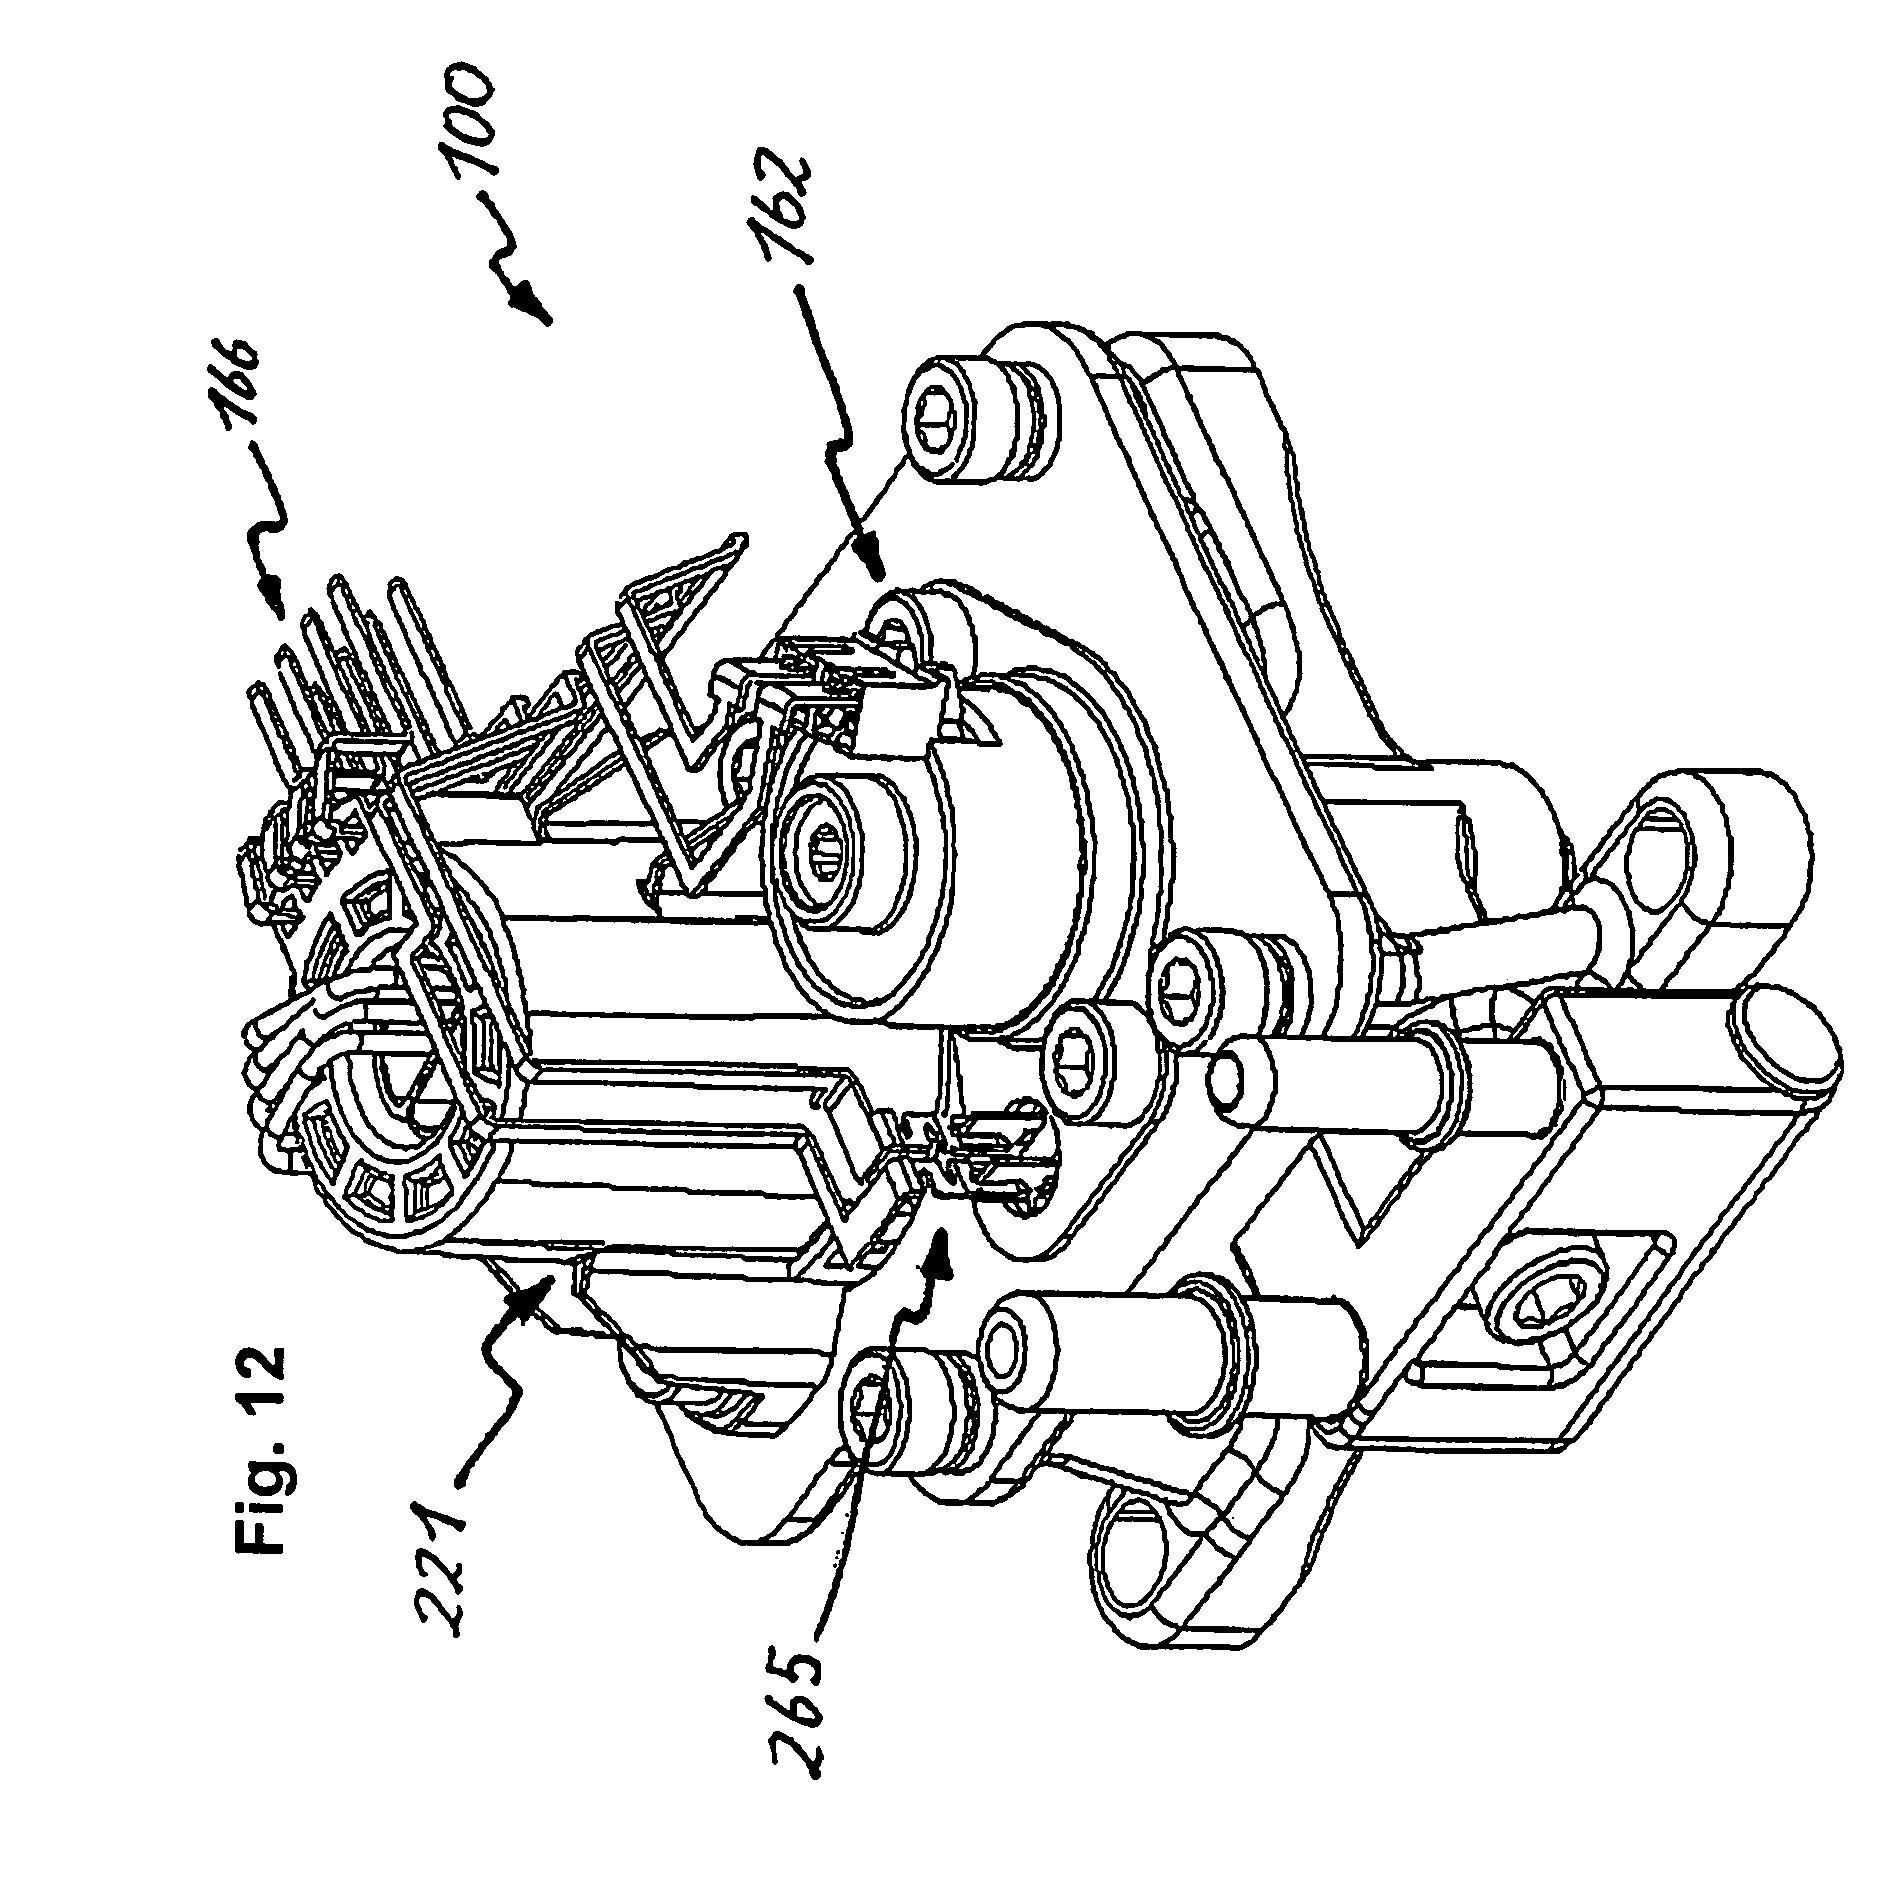 patent us8201393 exhaust gas aftertreatment device patents VW Jetta 2.0 Engine Diagram patent drawing